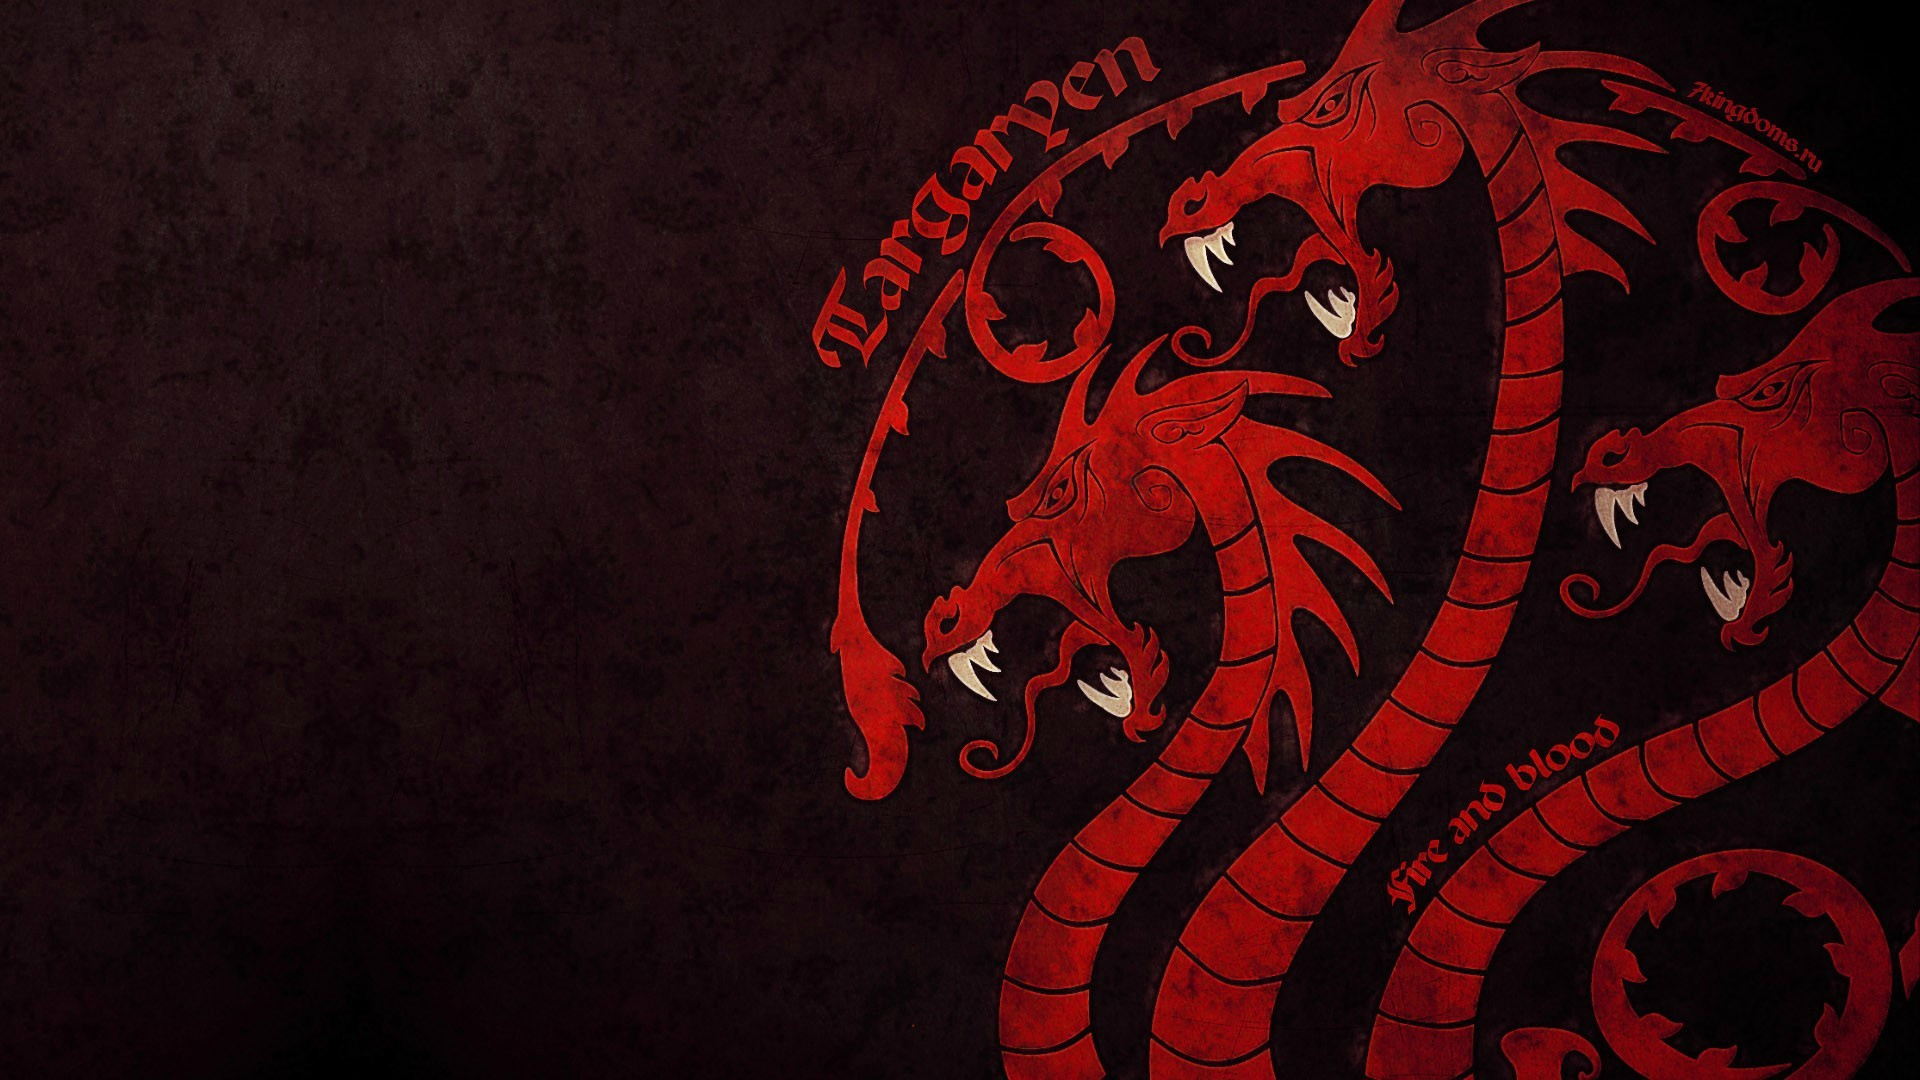 Game Of Thrones House Targaryen Fire And Blood Dragon Sigils Wallpaper